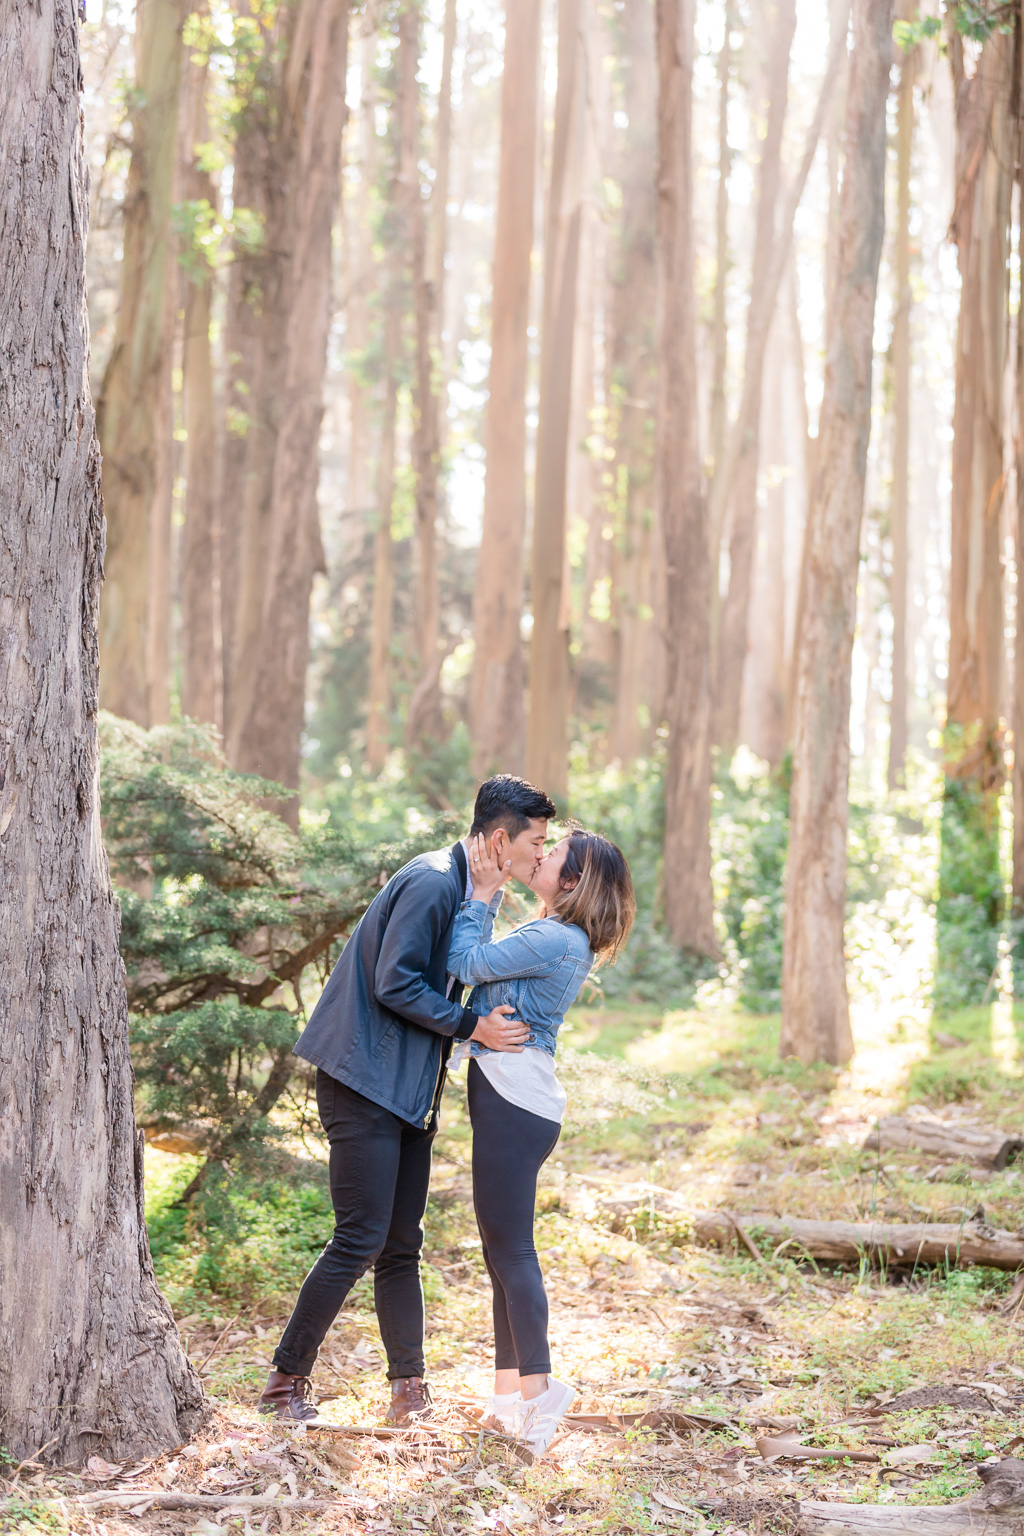 Lovers' Lane engagement photos in the woods